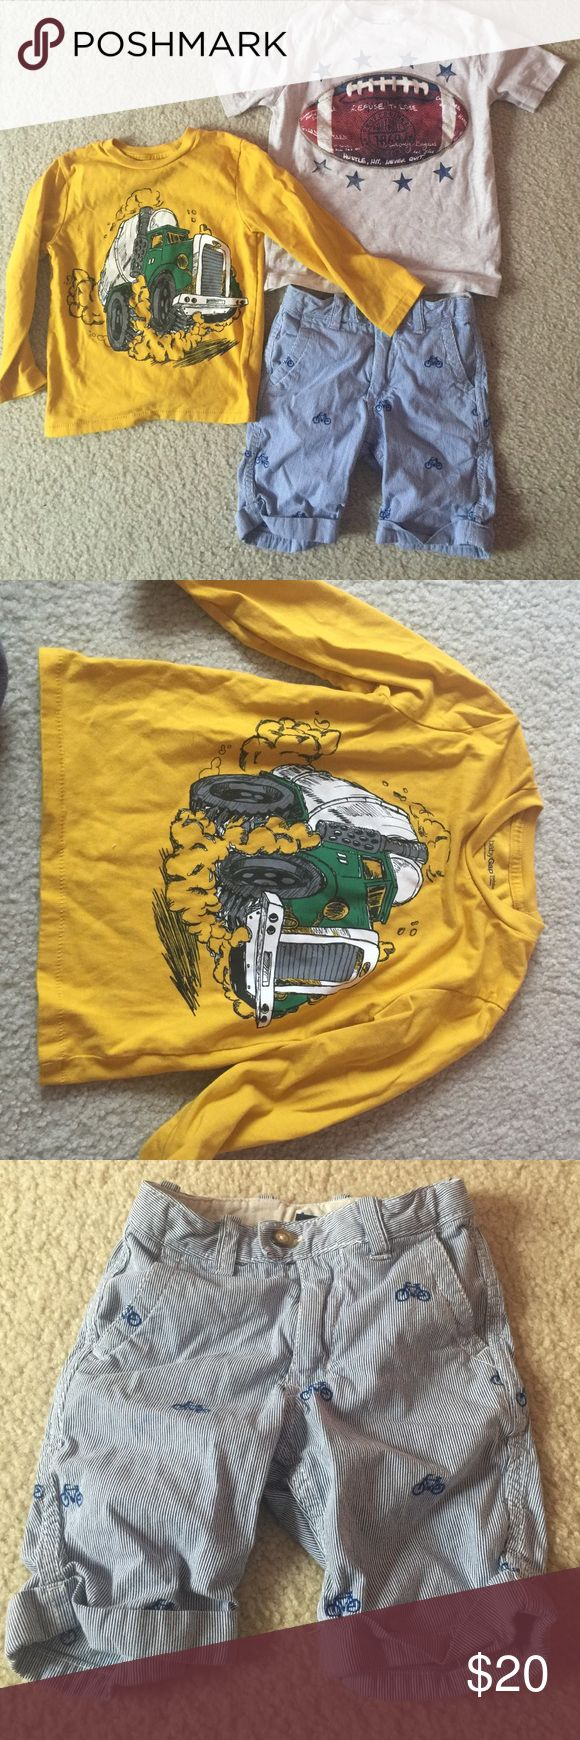 EUC Lot of boys baby Gap clothing (size 4t) EUC two tops and a pair of shorts. Shorts have bicycles on them. Football shirt is a size (4/5) GAP Shirts & Tops Tees - Short Sleeve